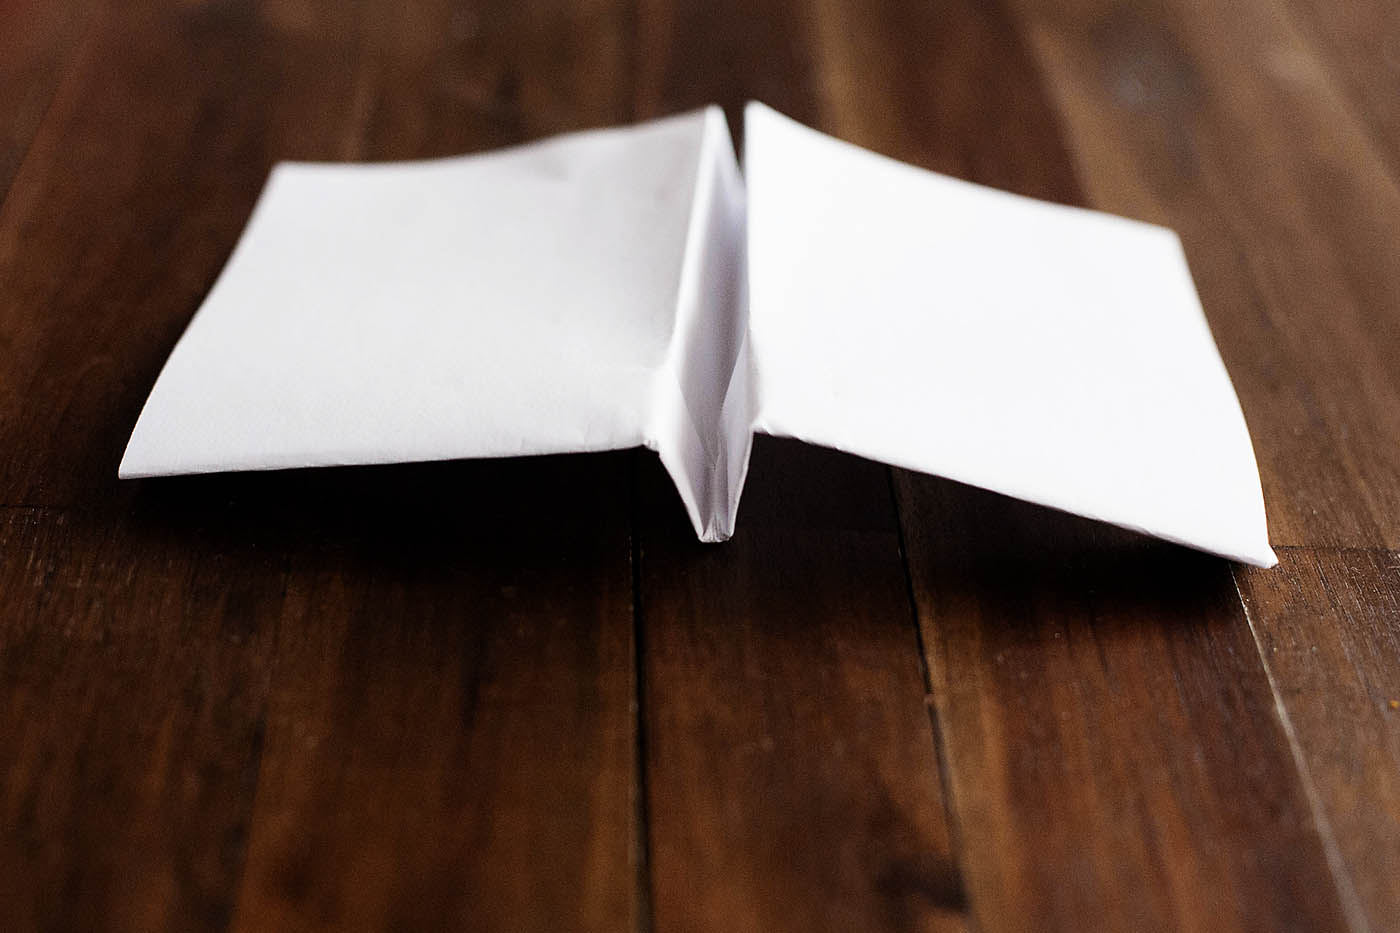 How to make a paper airplane with square